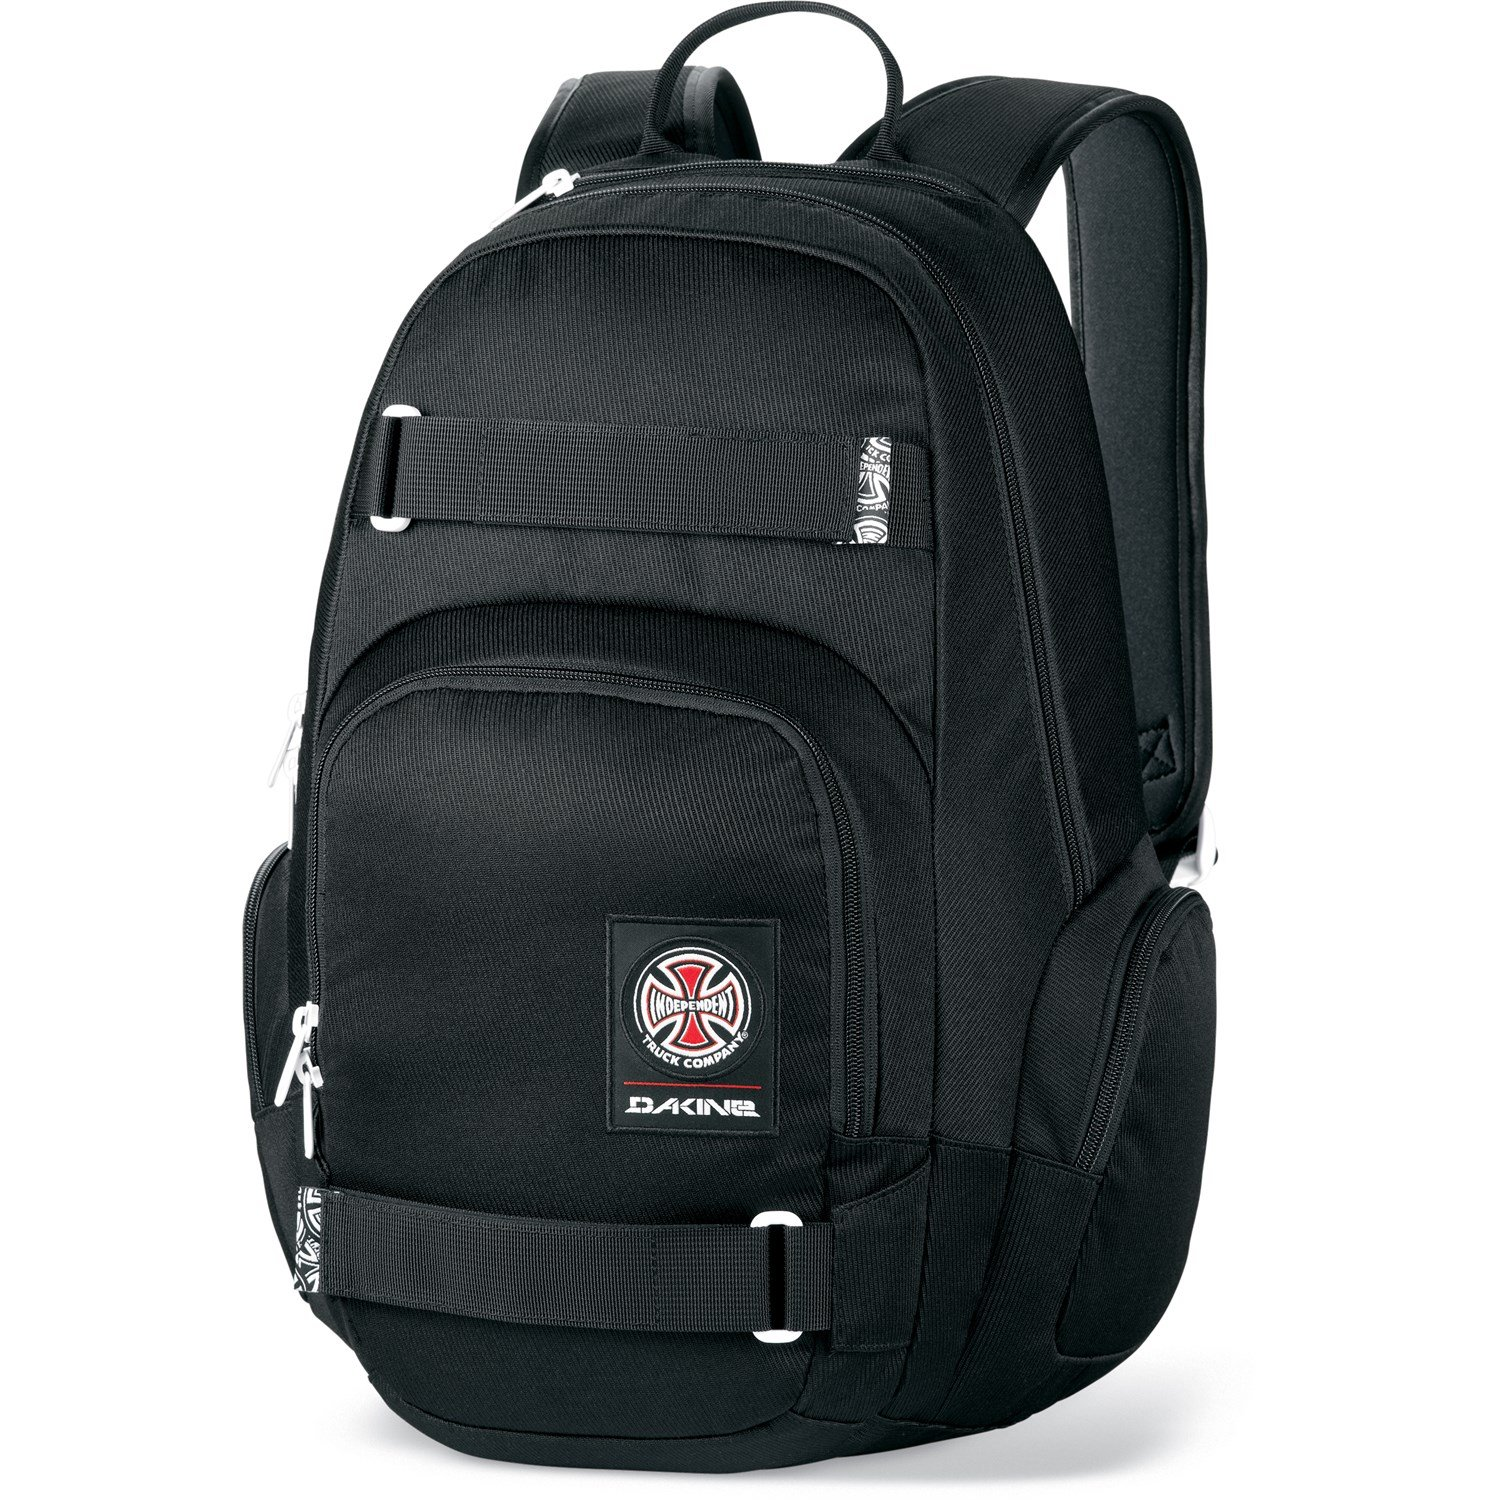 DaKine Atlas Independent Collab Backpack | evo